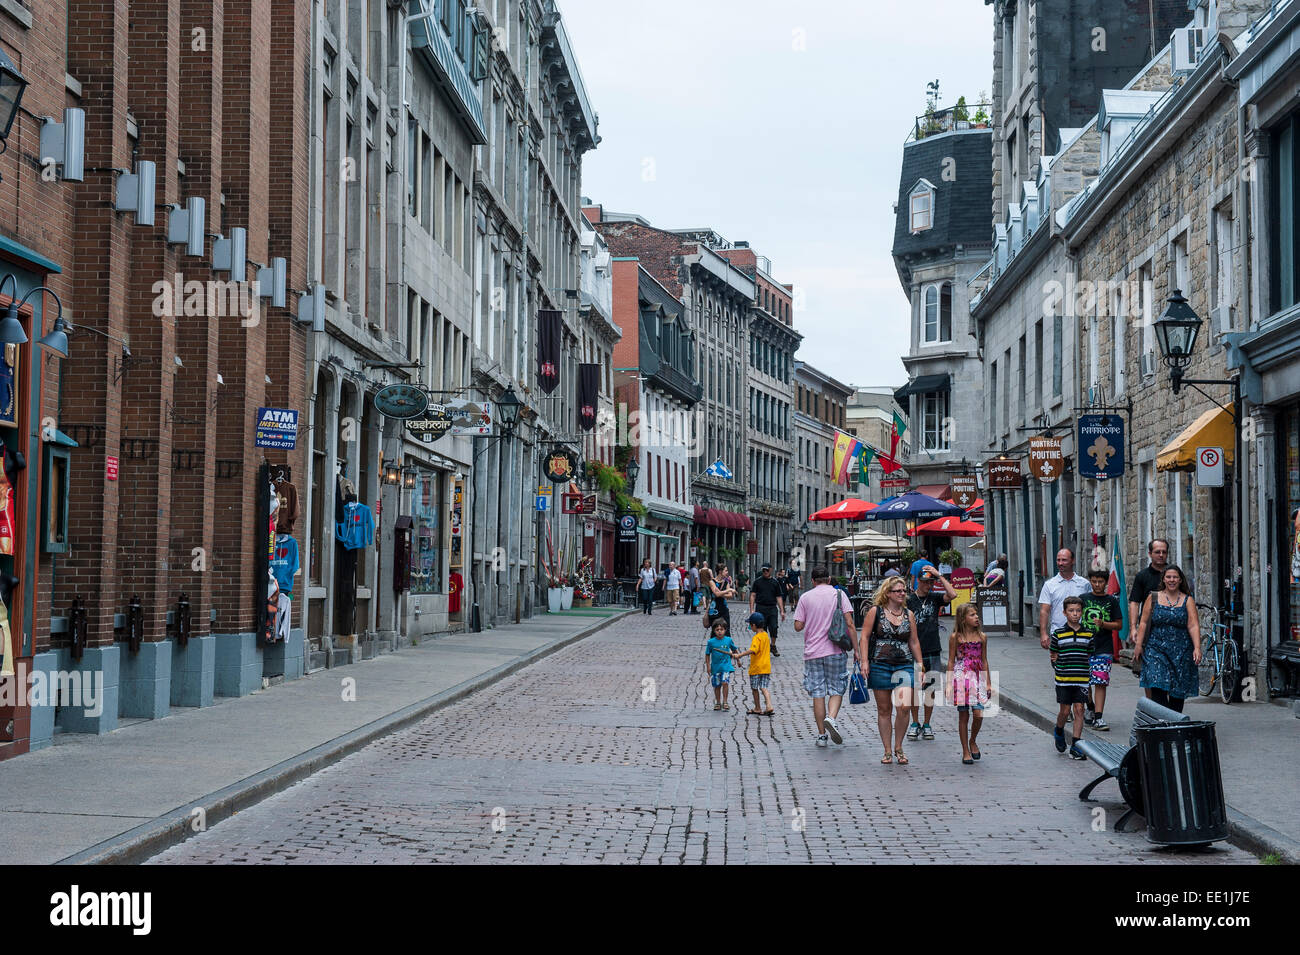 Cobblestone street in the old quarter of Montreal, Quebec, Canada, North America - Stock Image